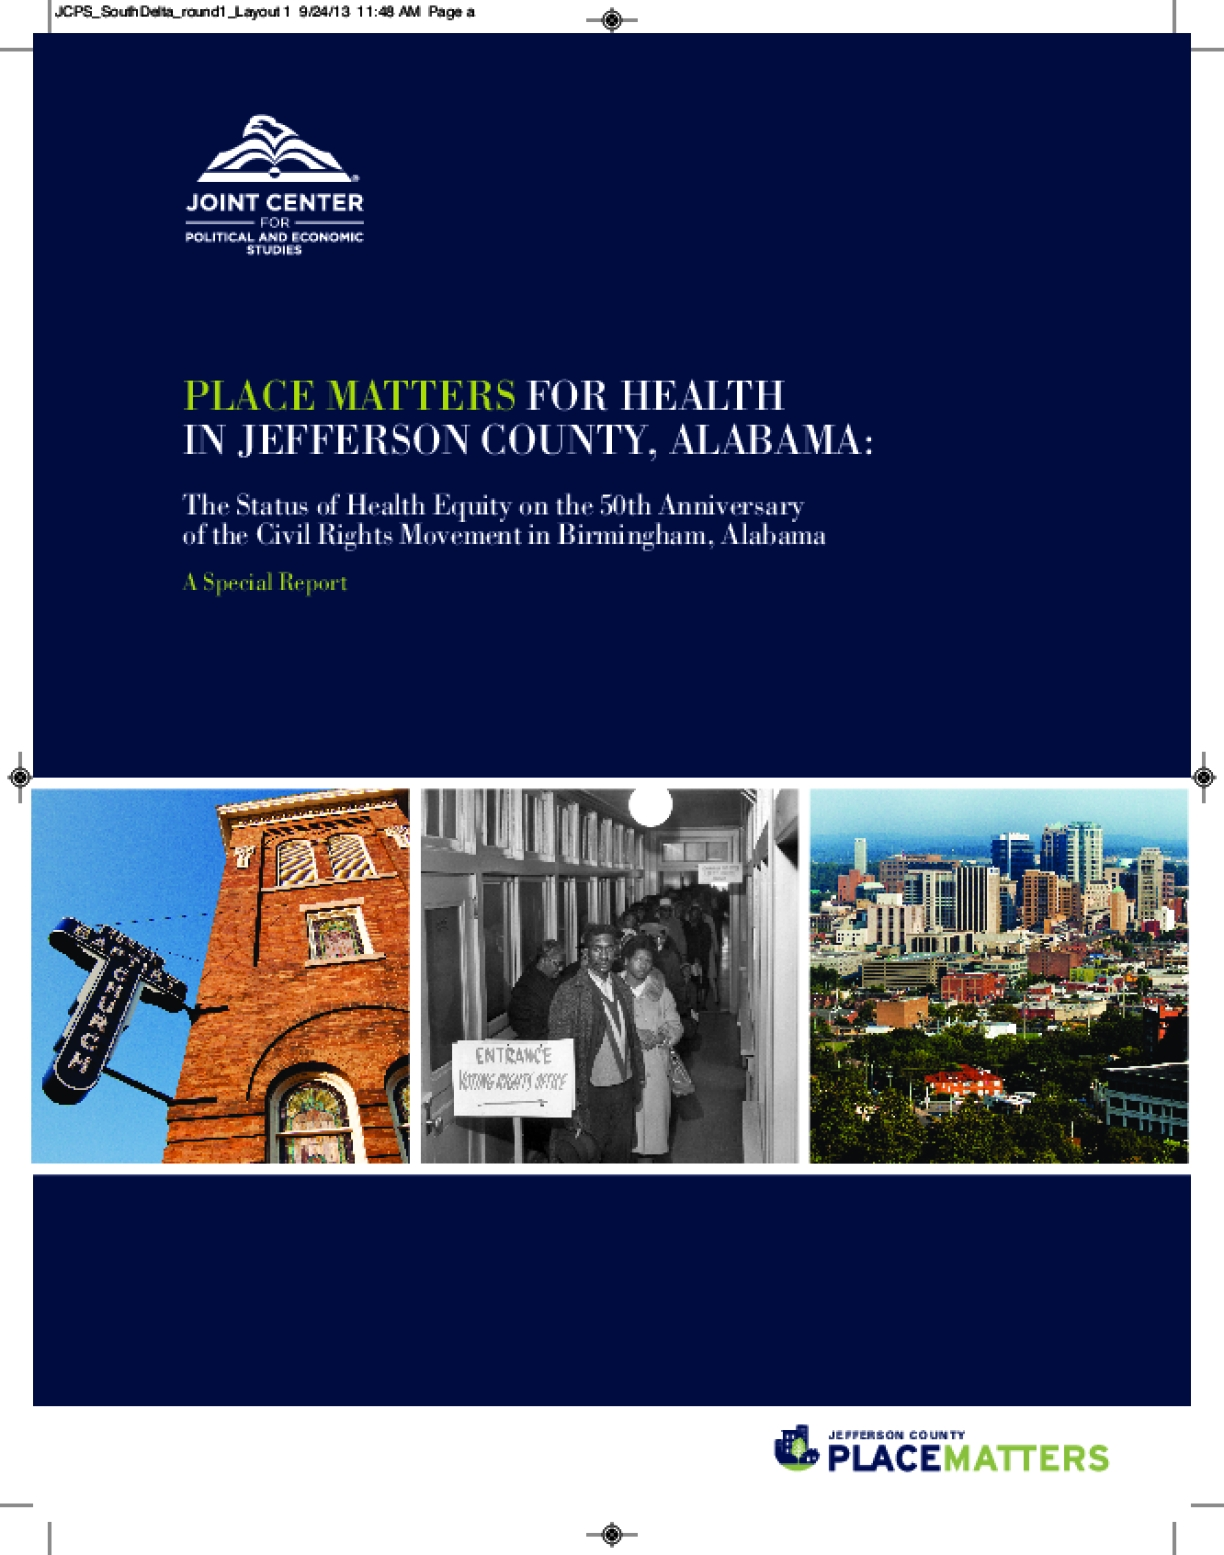 Place Matters for Health in Jefferson County, Alabama: Ensuring Opportunities for Good Health for All, A Report on Health Inequities in Birmingham, Alabama